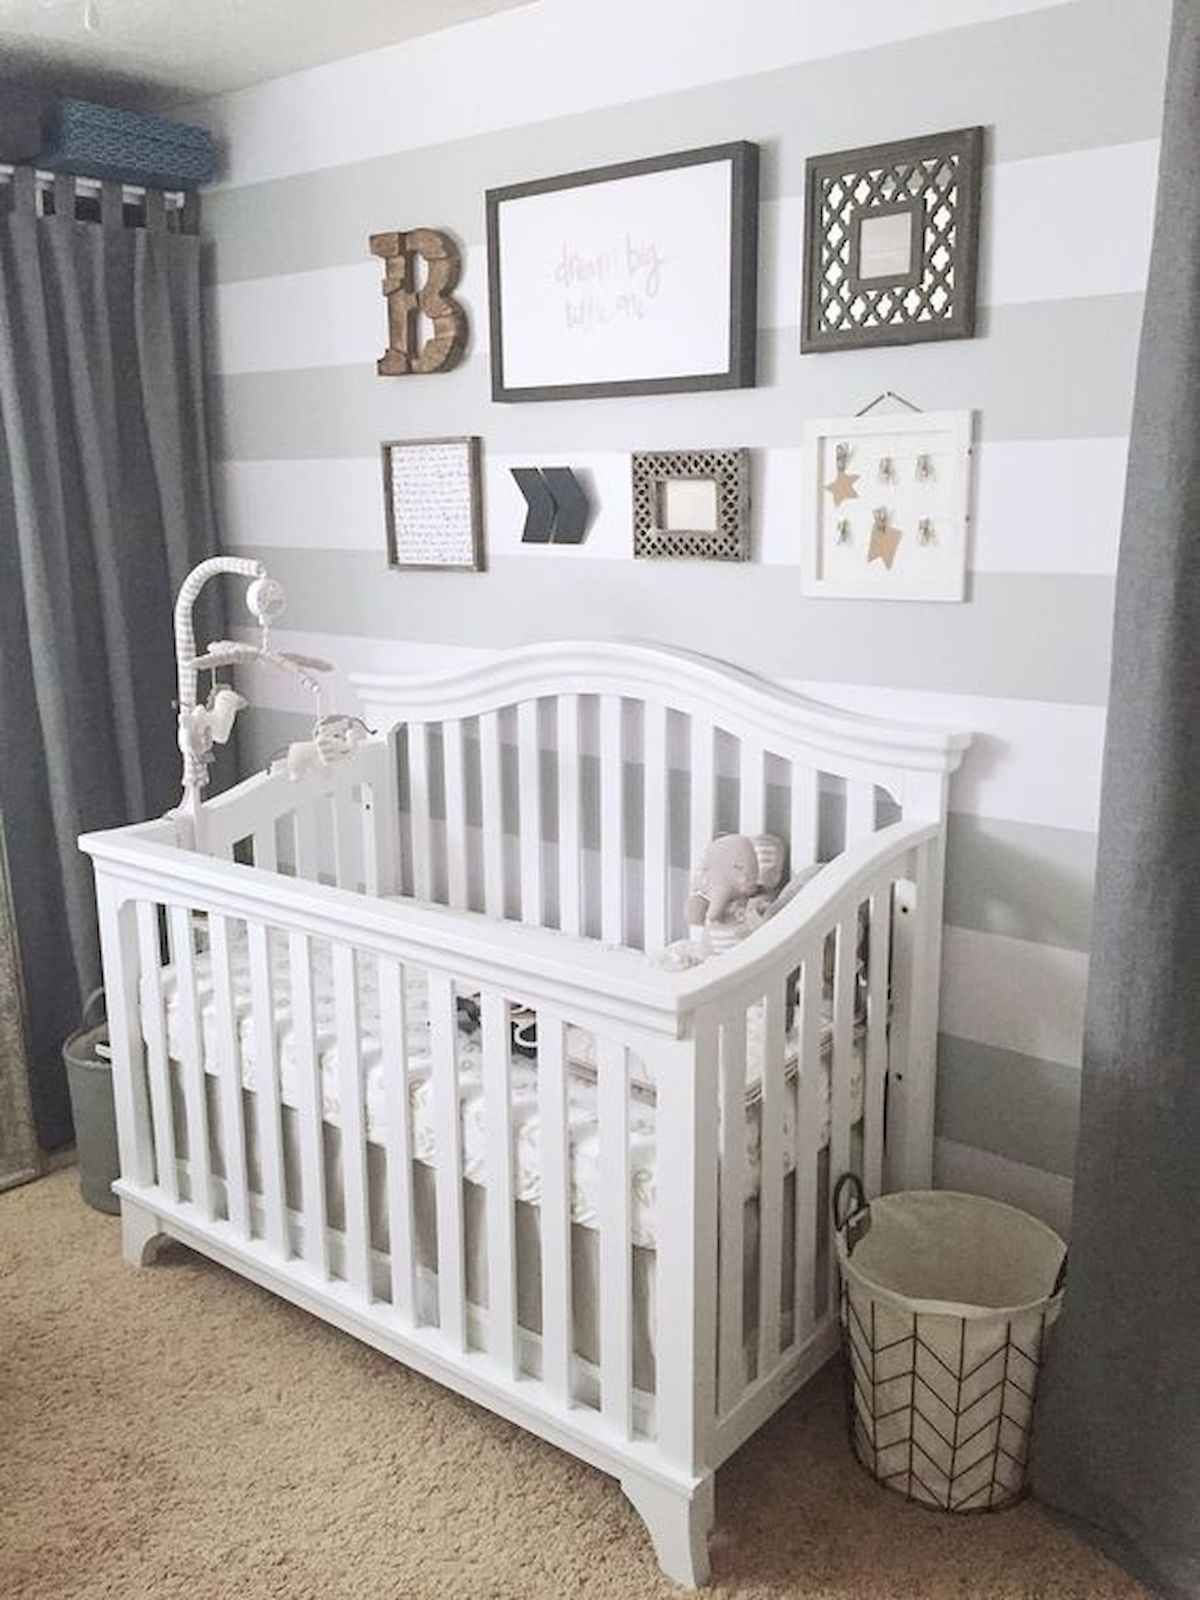 23 Awesome Small Nursery Design Ideas 22 Small Baby Room Baby